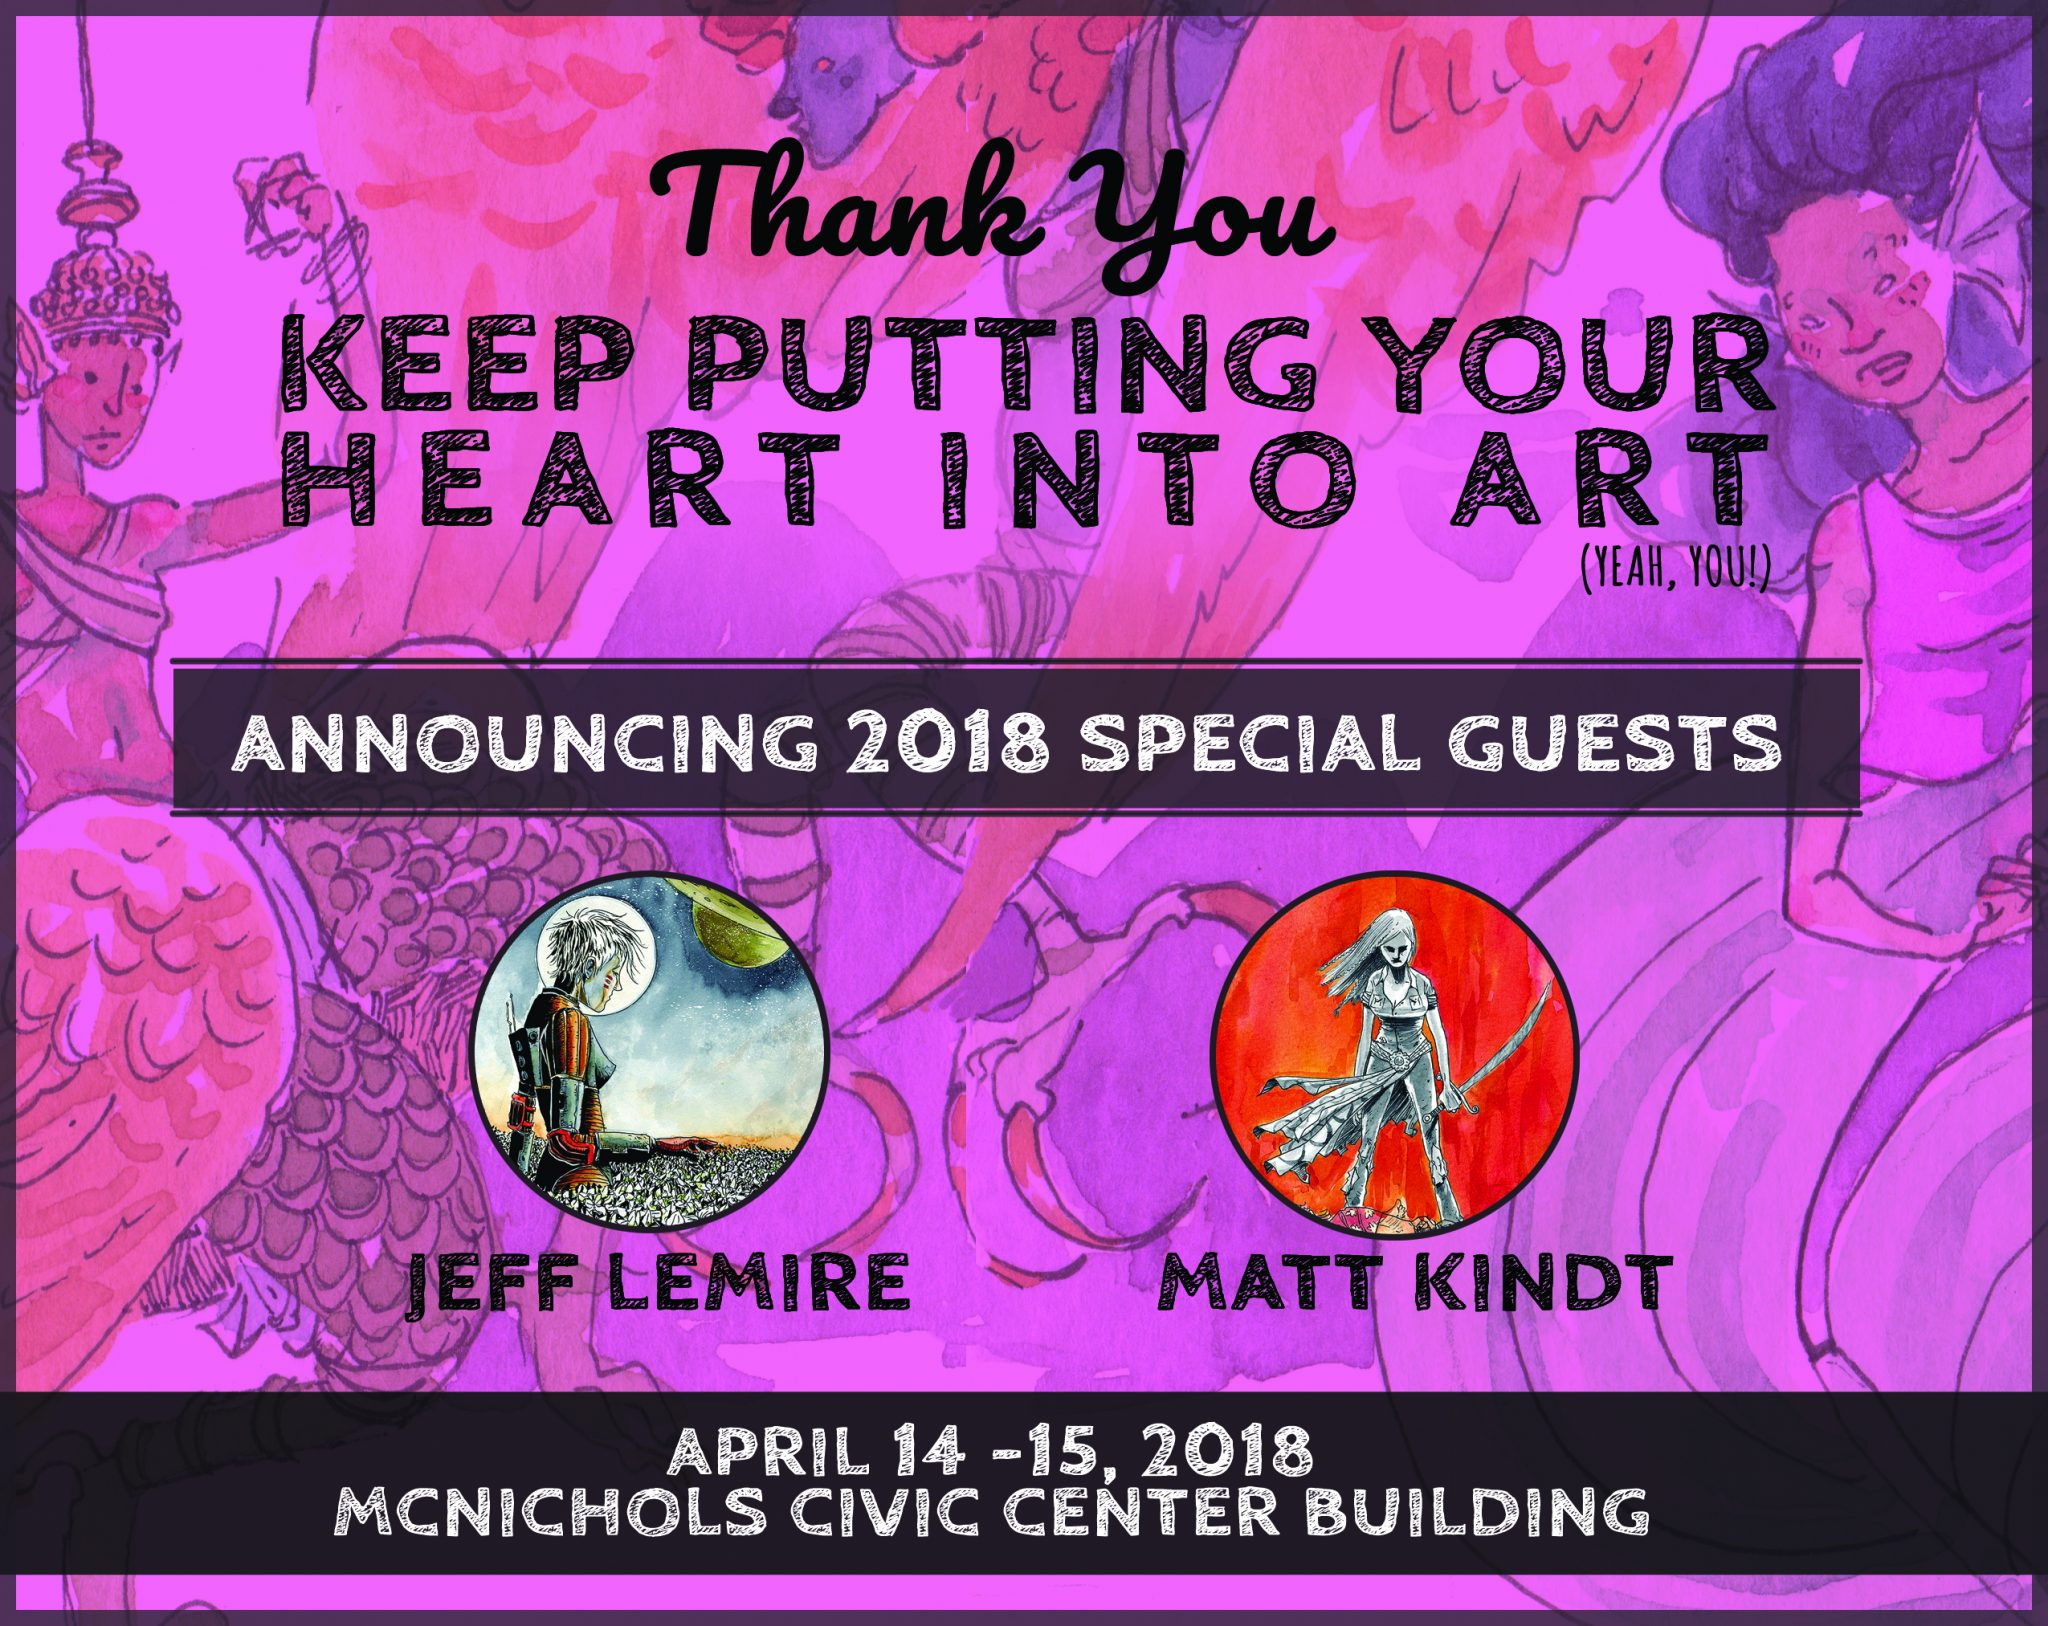 DINK 2018 guest announcement of Jeff Lemire & Matt Kindt.